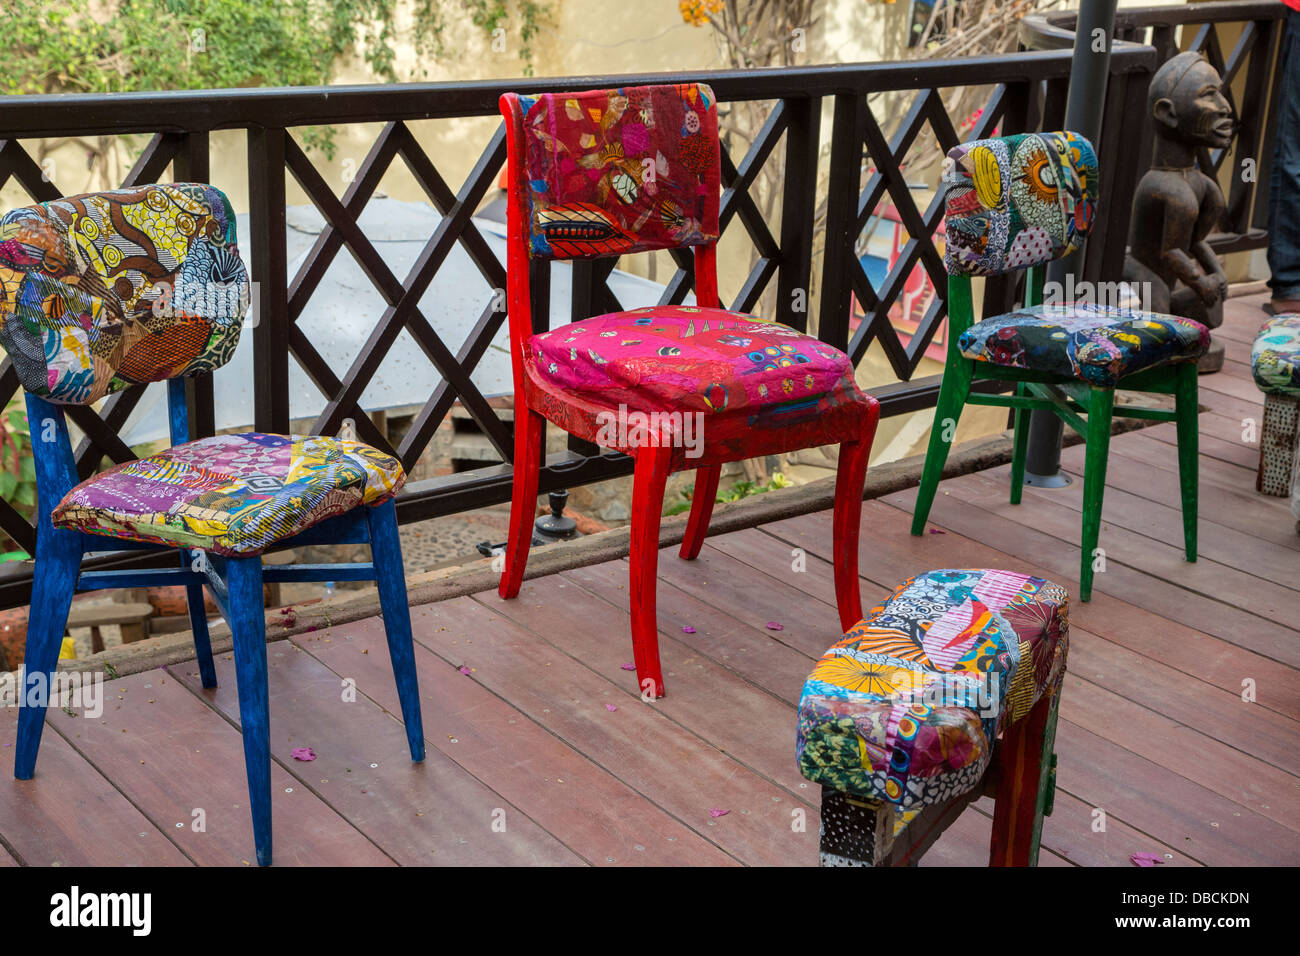 Colorful Artistic Furniture Made By Artist Amadou Kane Sy, Biannual Arts  Festival, Goree Island